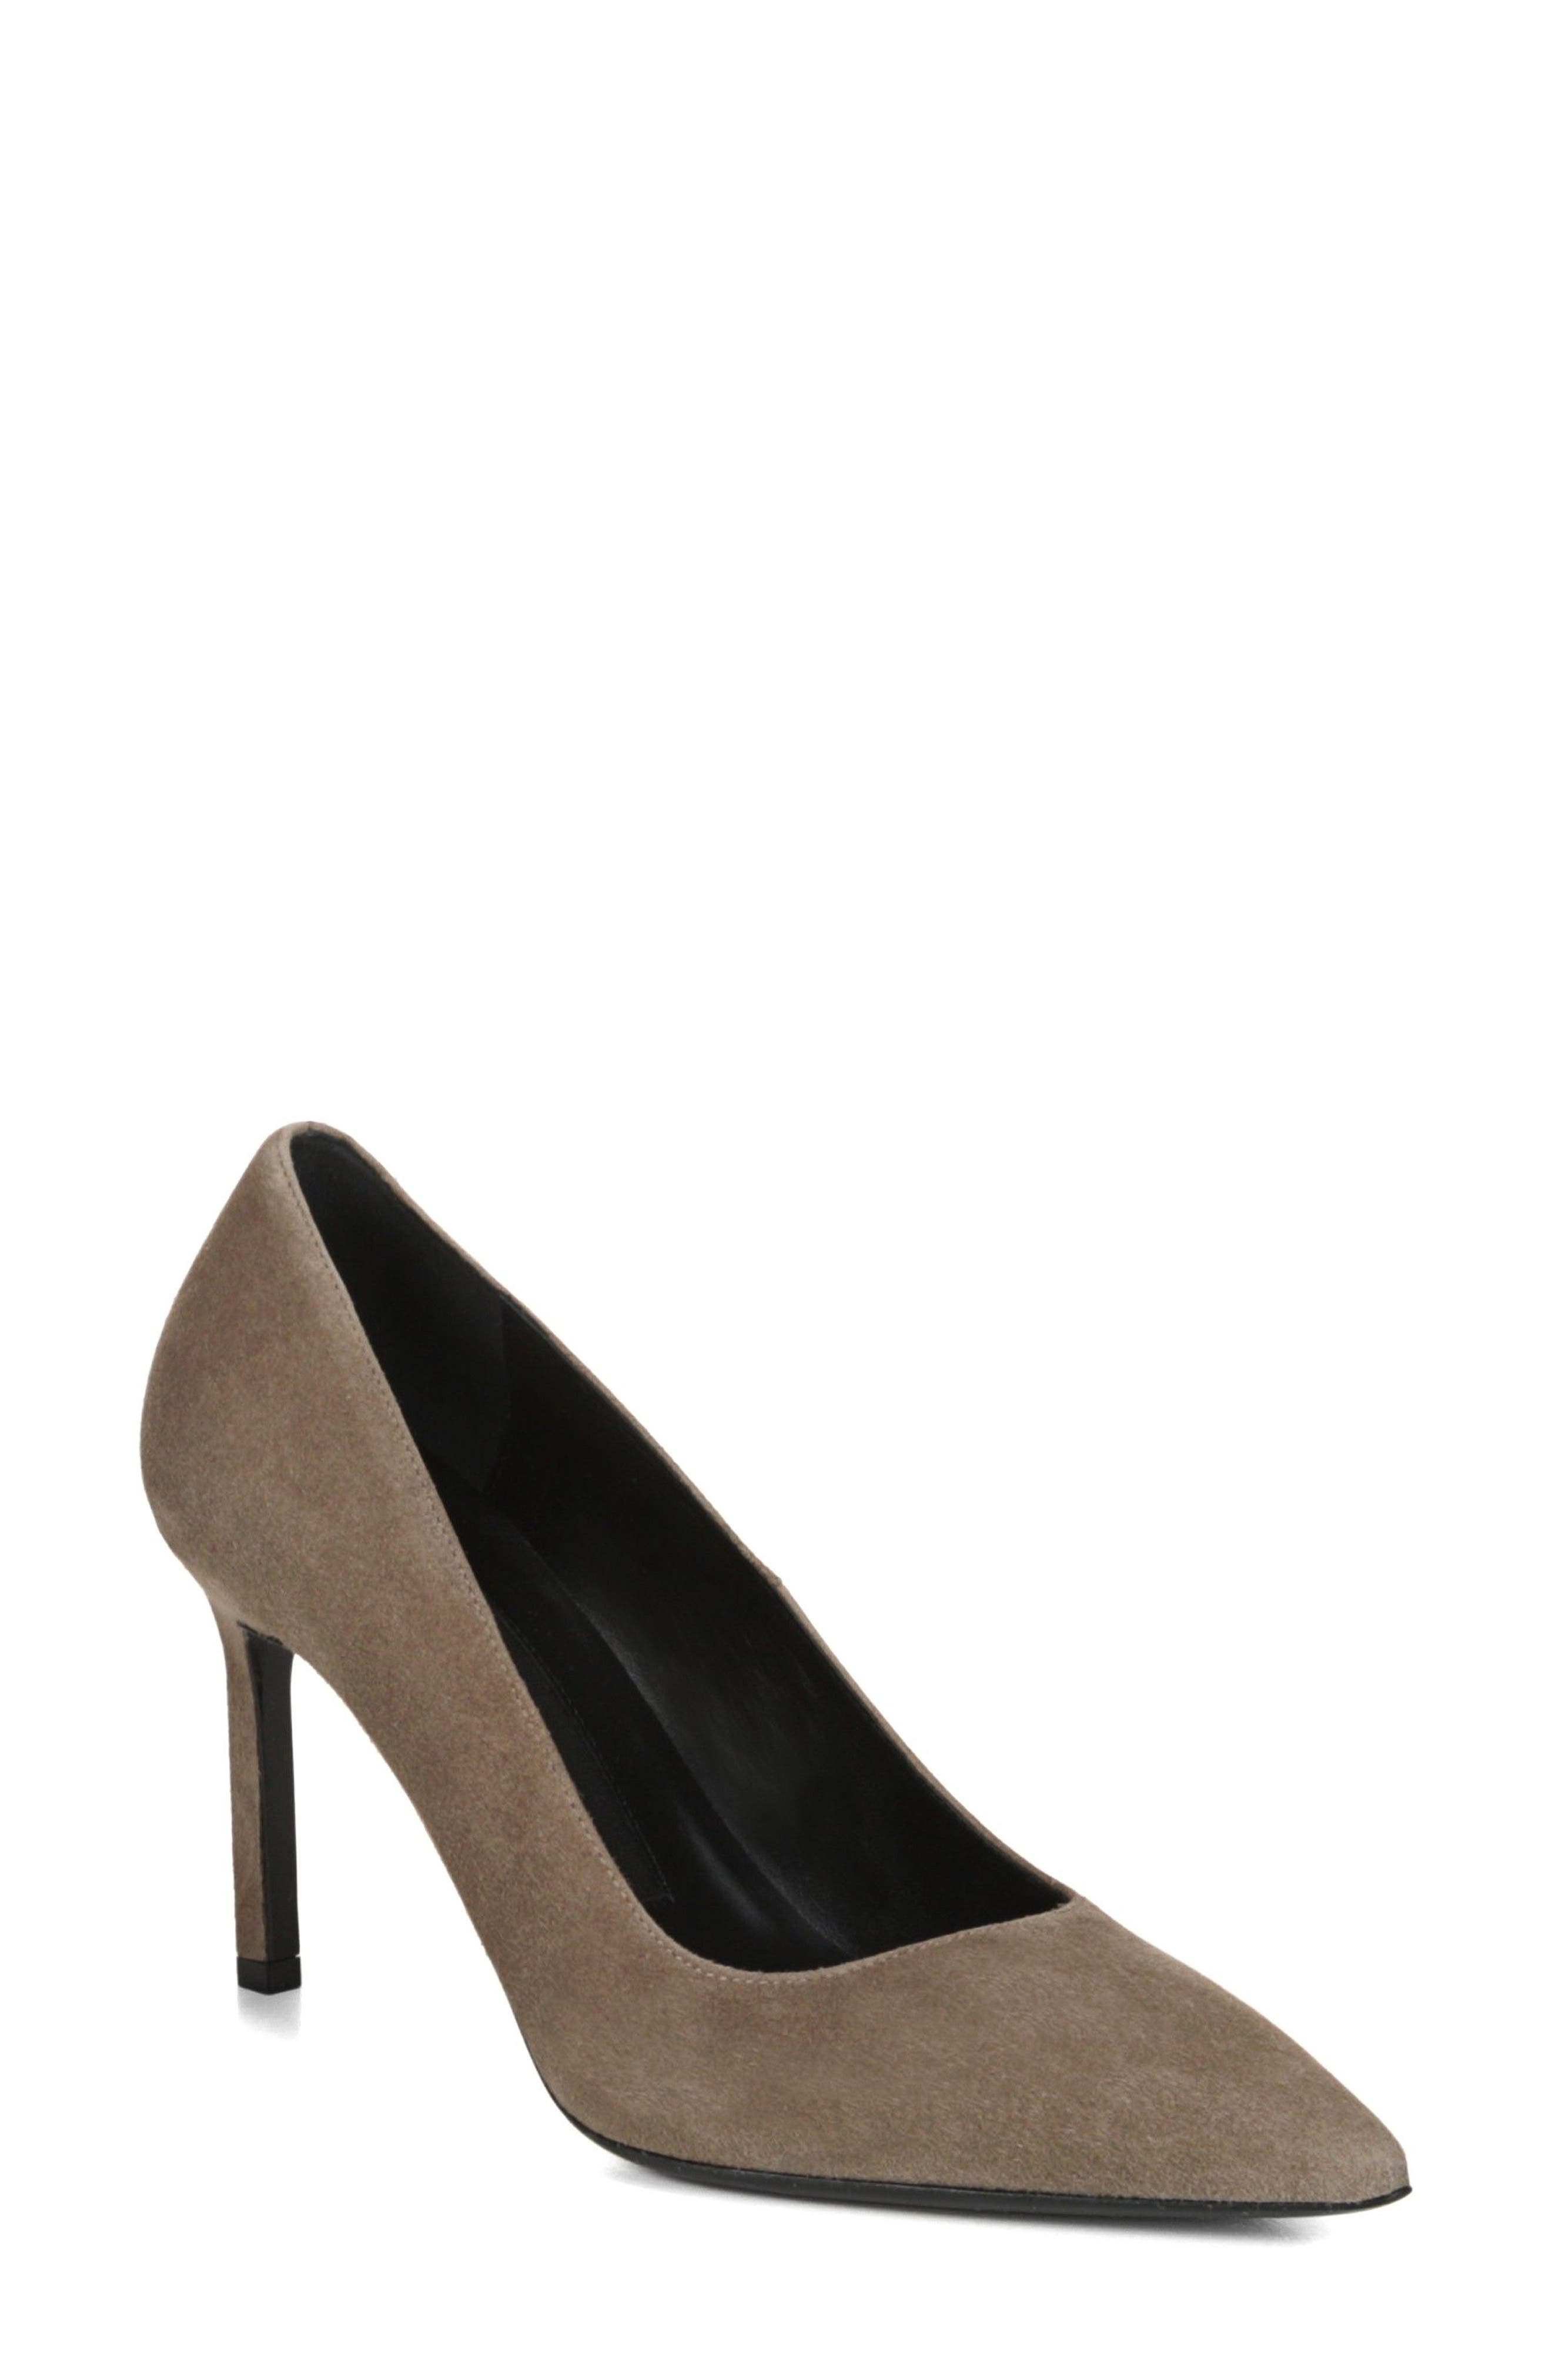 Nikole Pointy Toe Pump,                             Main thumbnail 1, color,                             Mink Suede